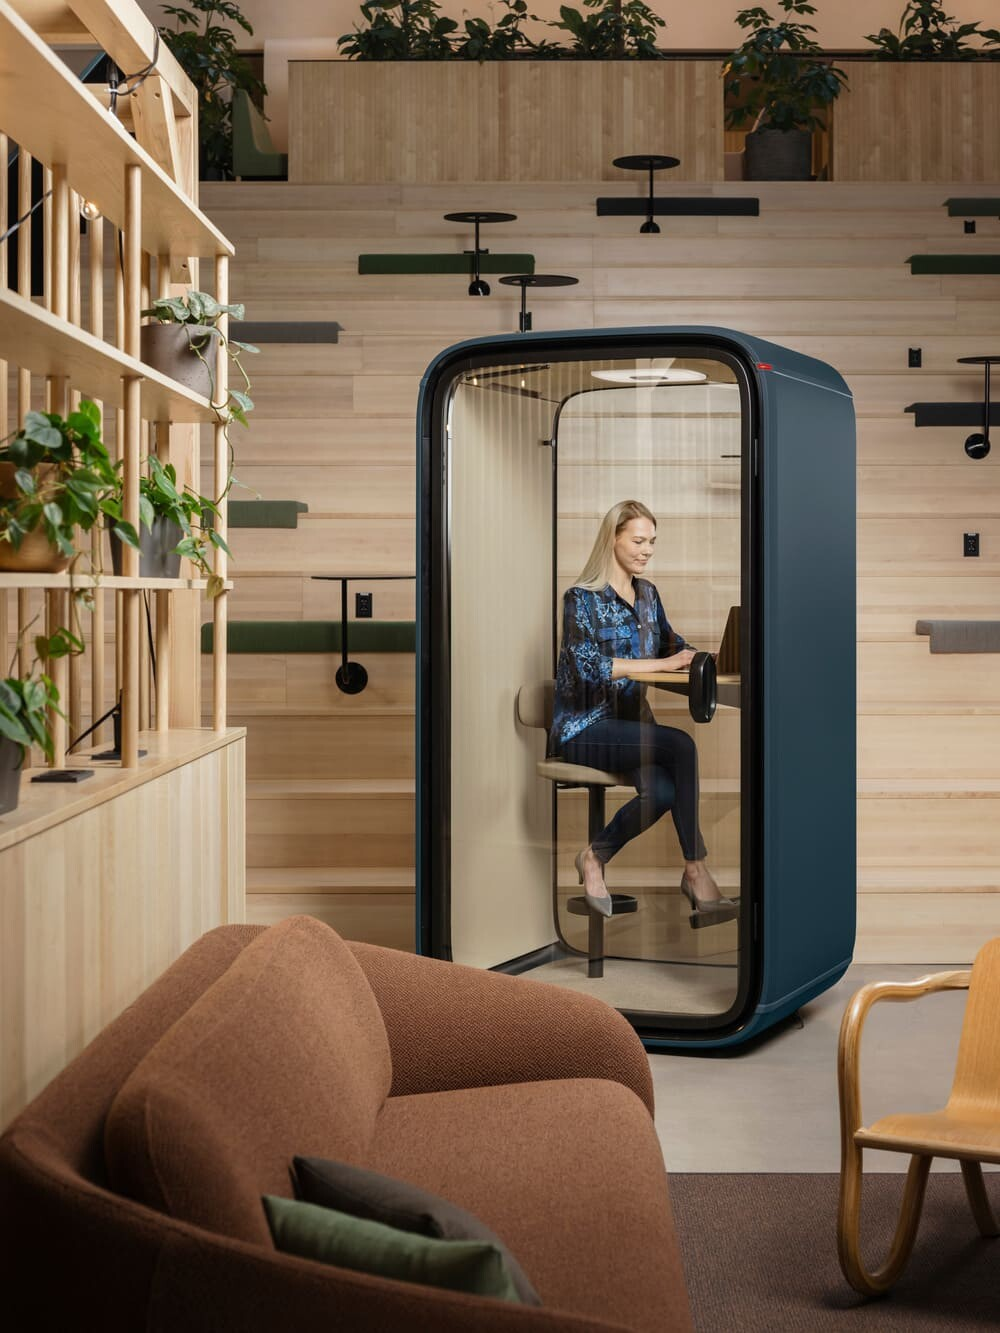 Framery Launches World's First Connected Phone Booth